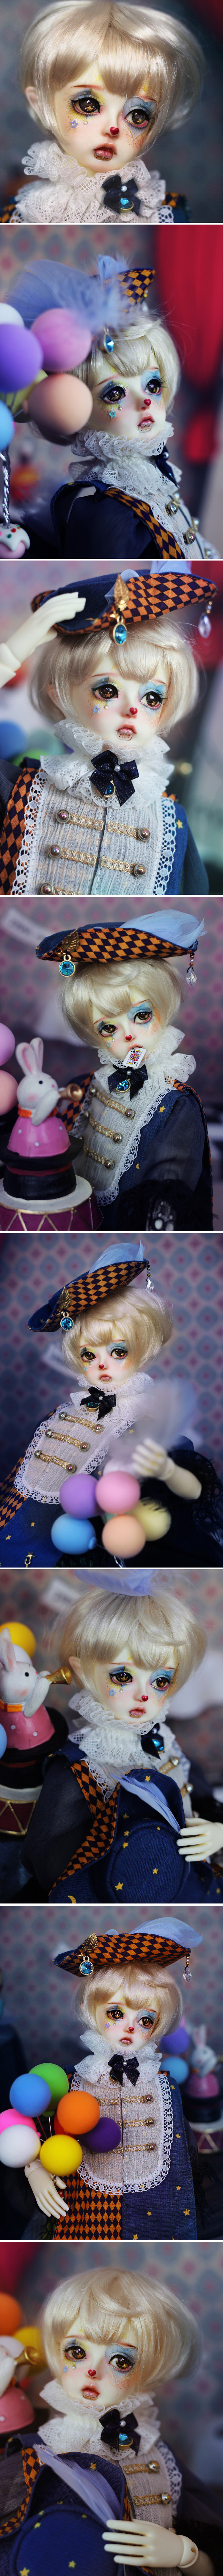 BJD Puppet Pinocchio Ball Jointed Doll